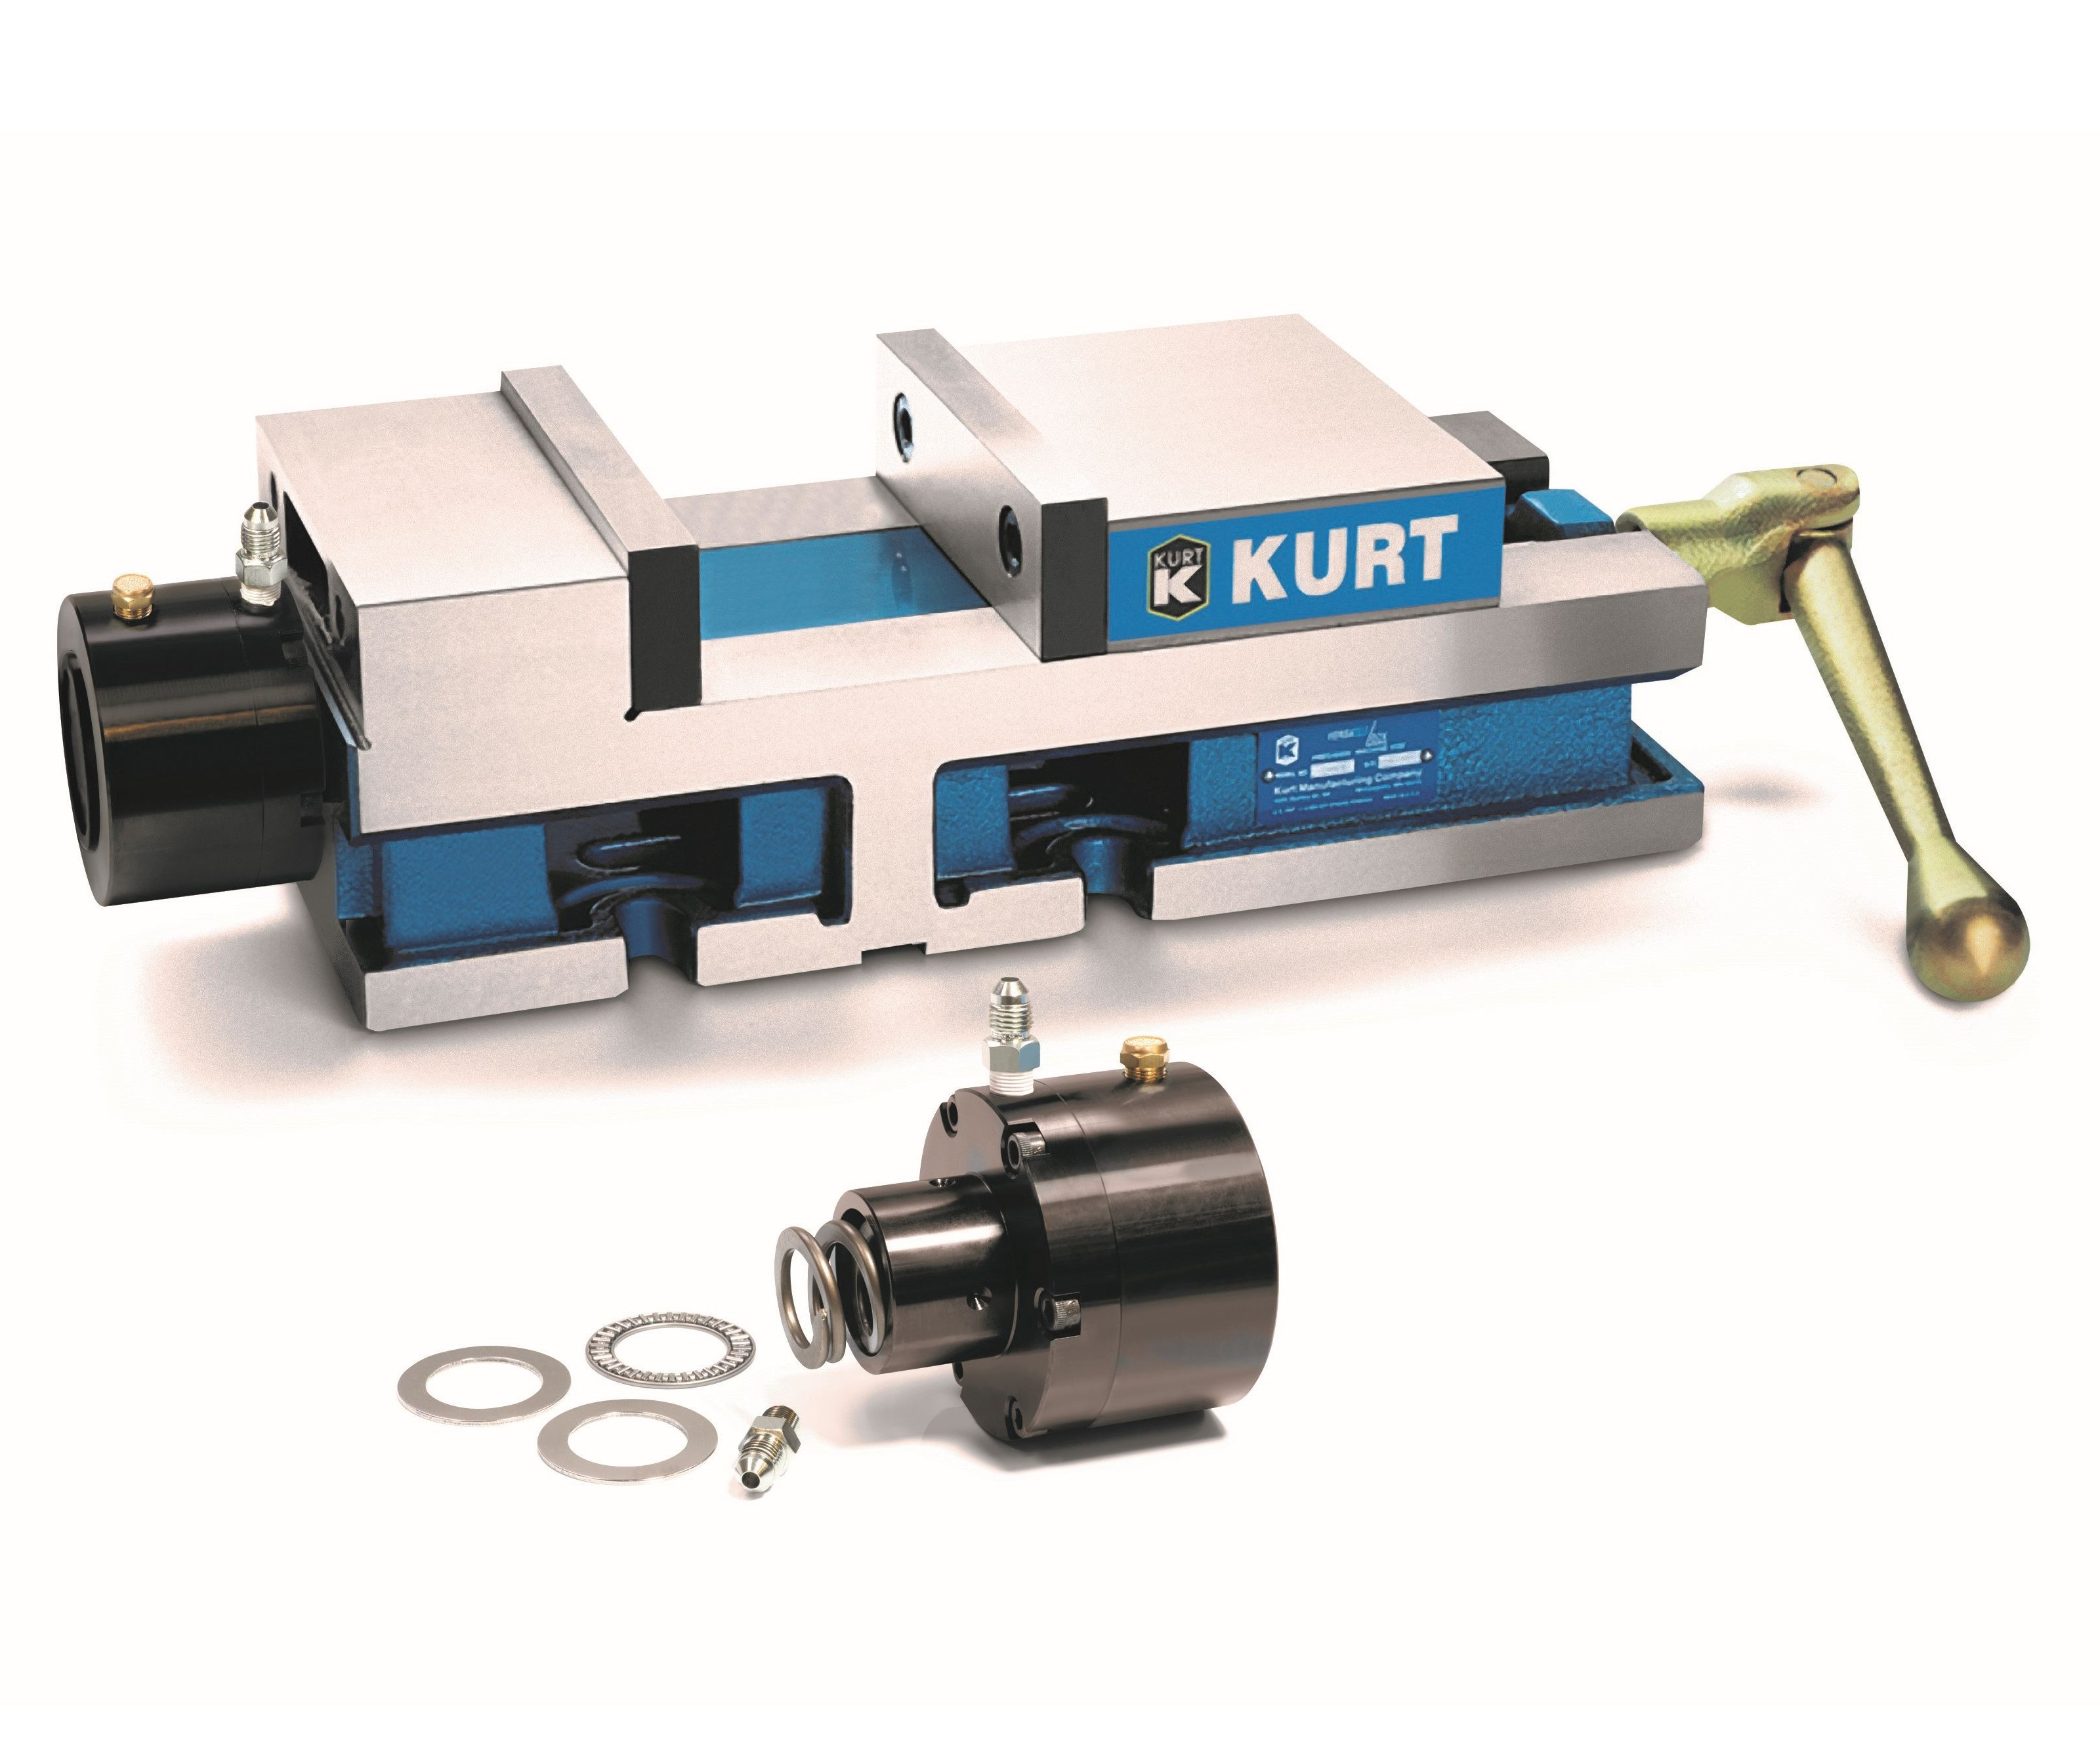 Kurt Workholding KHU6 hydraulic unit